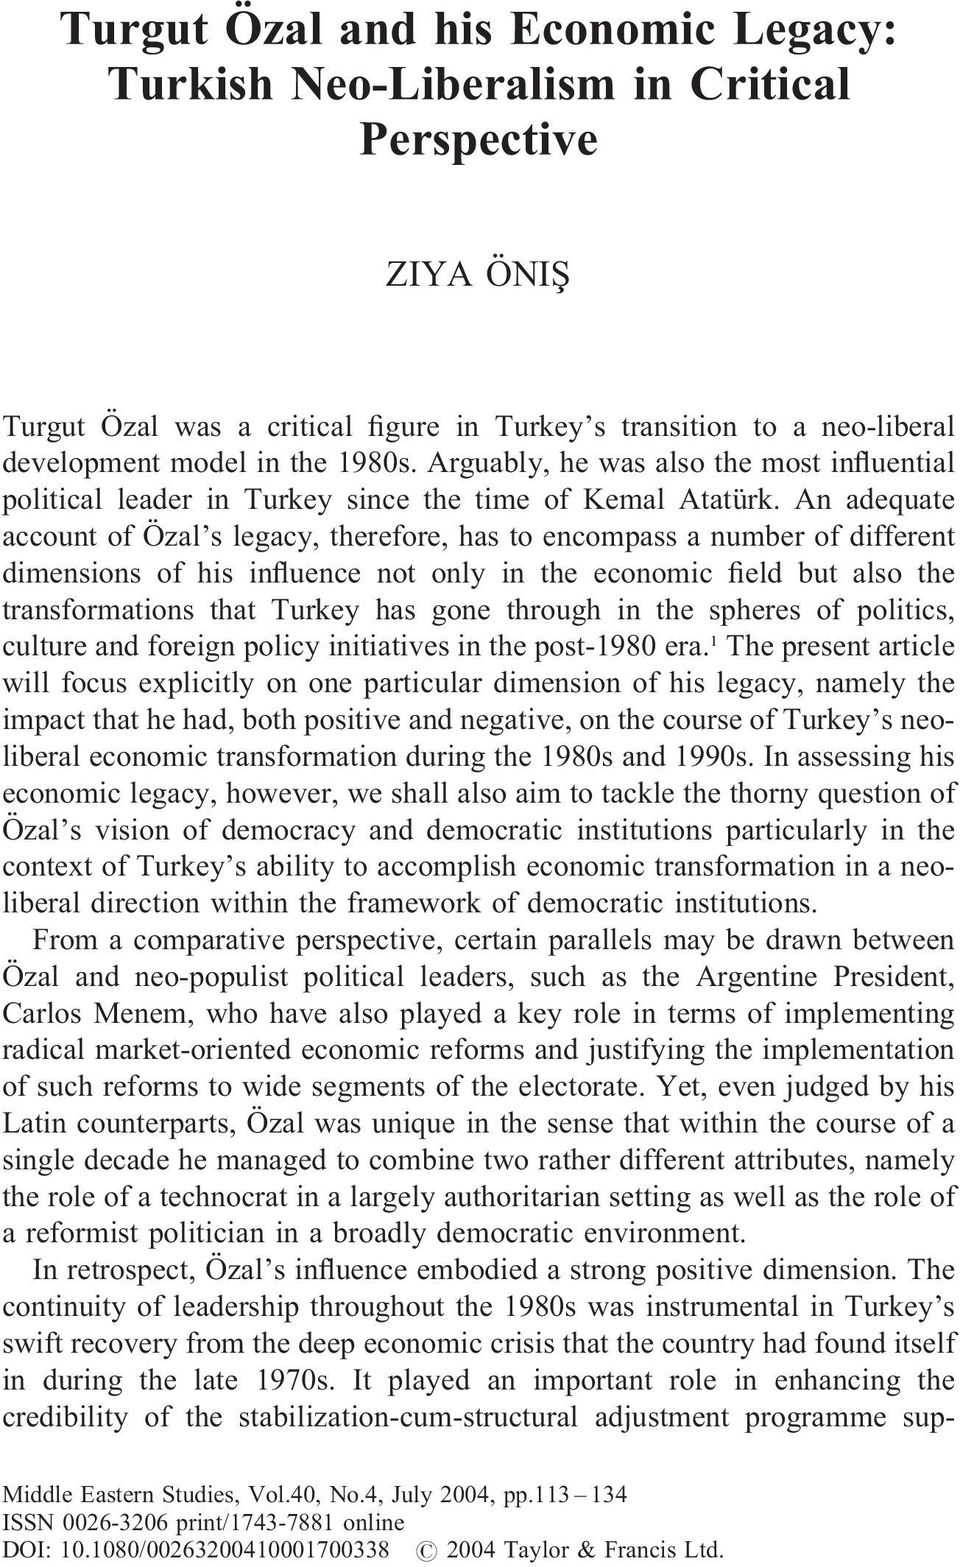 An adequate account of Özal s legacy, therefore, has to encompass a number of different dimensions of his influence not only in the economic field but also the transformations that Turkey has gone